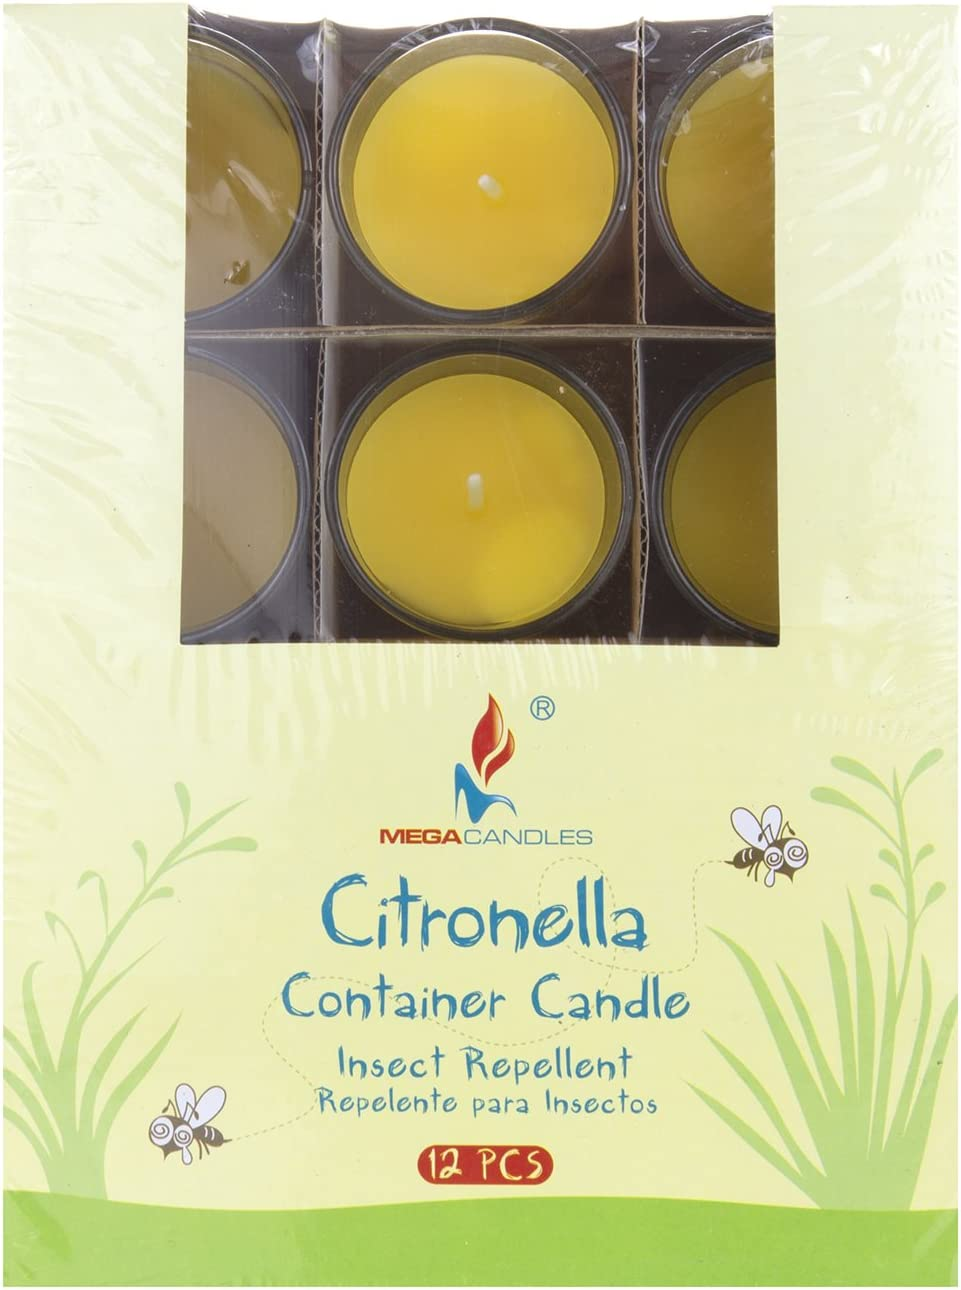 Everyday Candles for Mosquitoes and Insects Bug Repellent Candles for Indoor and Outdoor Use Hand Poured Paraffin Wax Candles 2 Diameter Mega Candles 4 pcs Citronella Floating Disc Candle